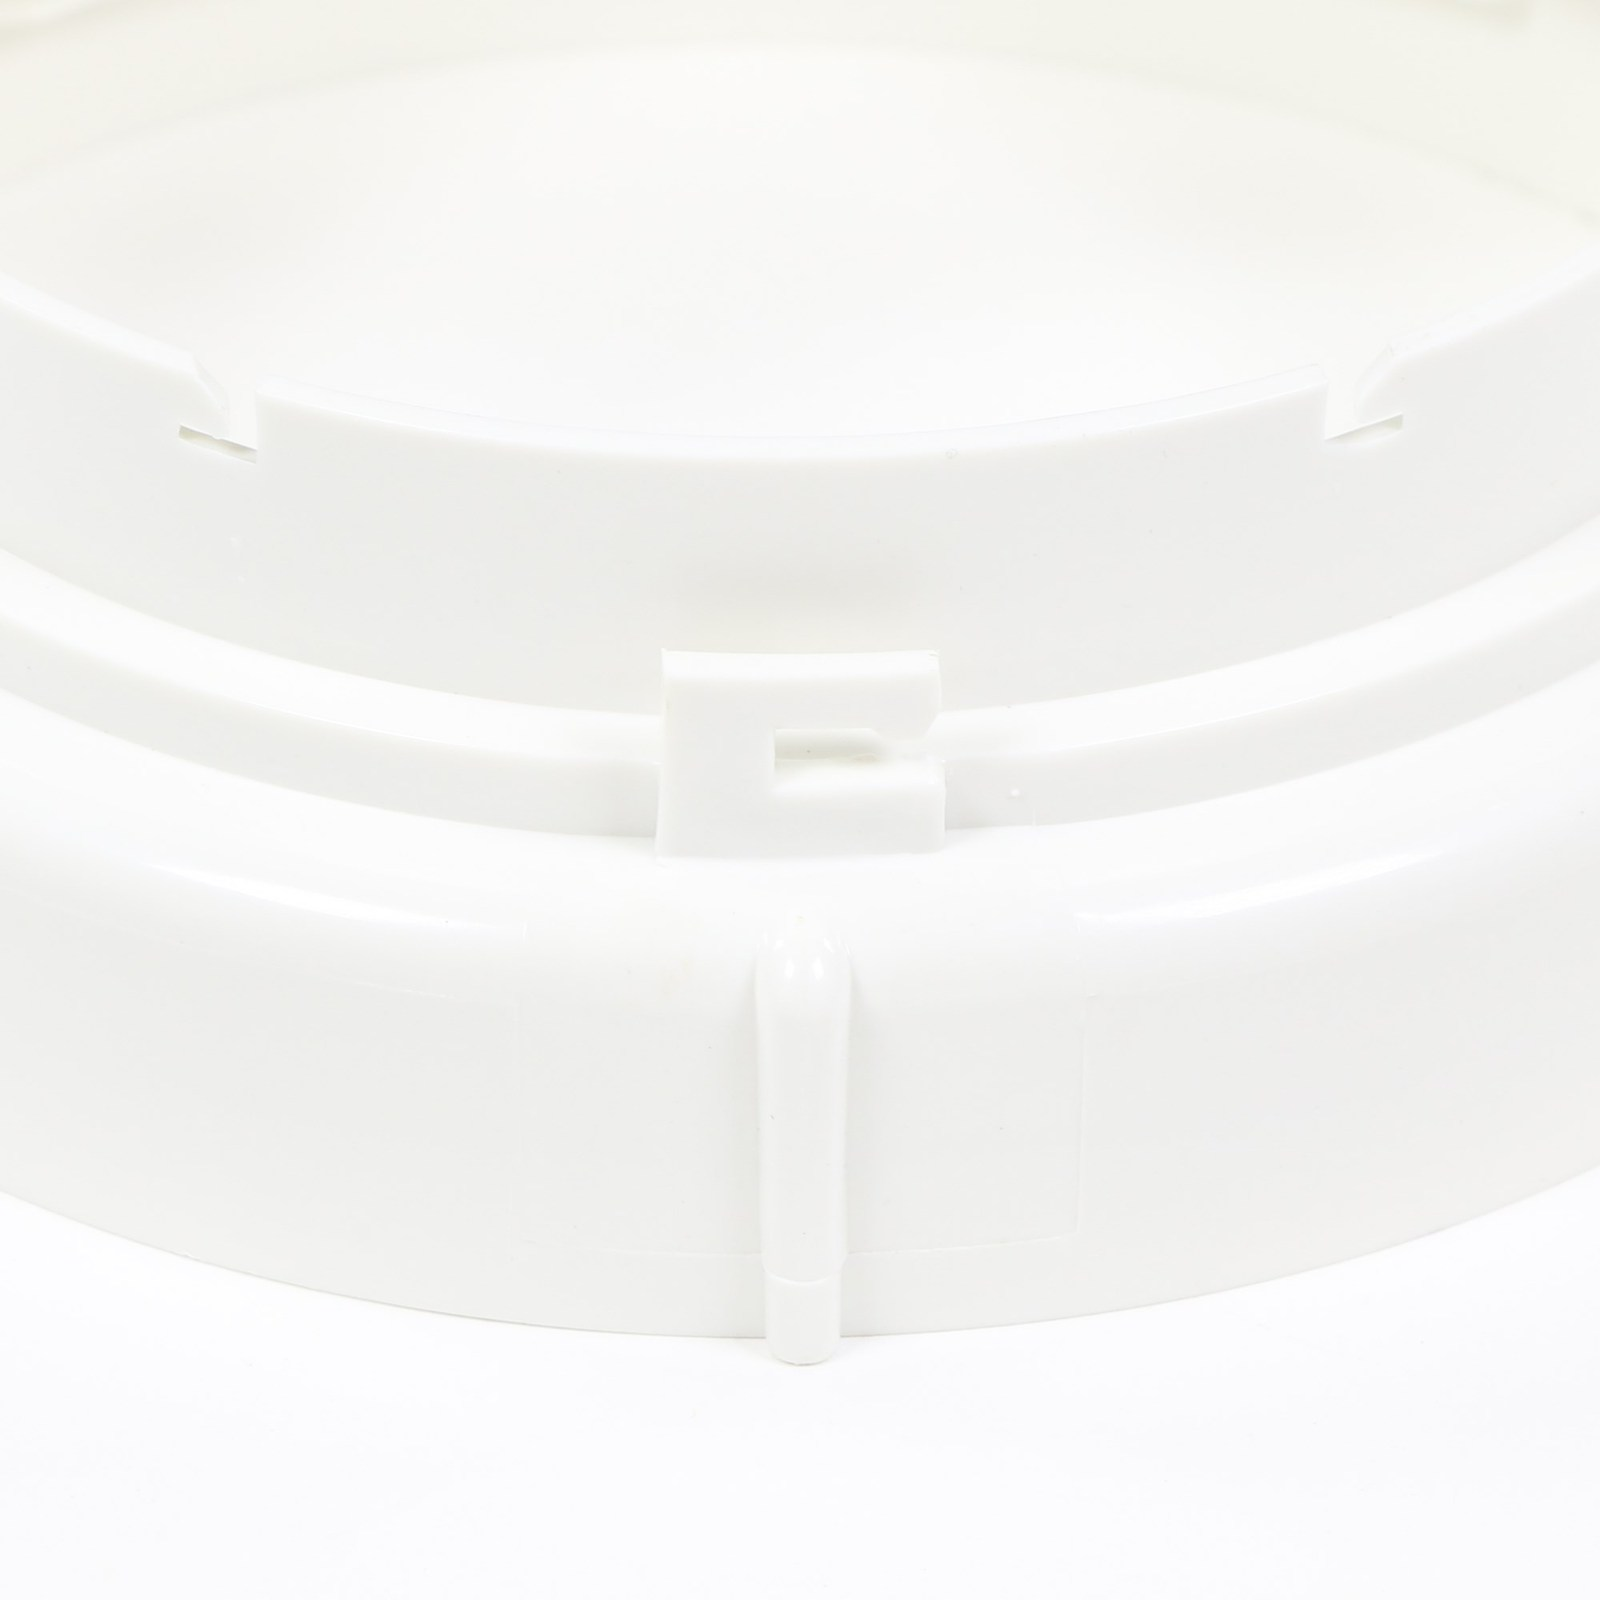 Primary image for 5304479274 ELECTROLUX FRIGIDAIRE Room air conditioner hose-to-window adapter